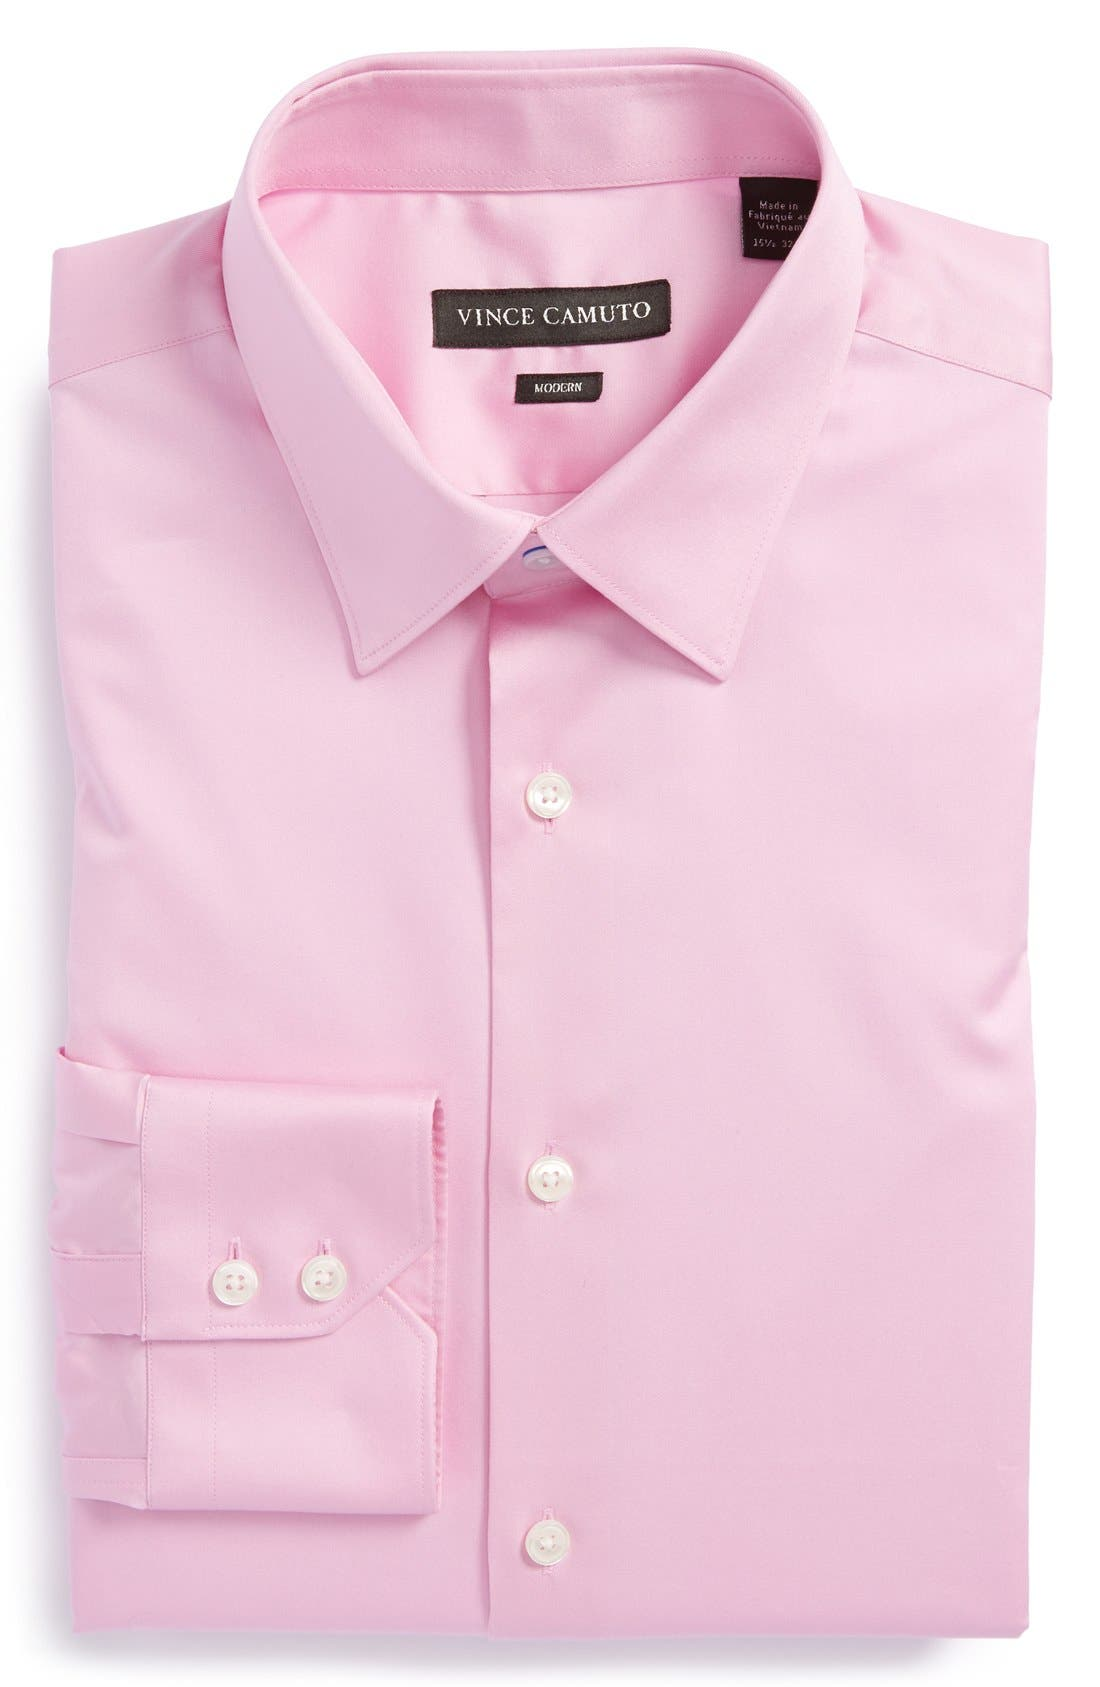 Main Image - Vince Camuto Modern Fit Solid Dress Shirt